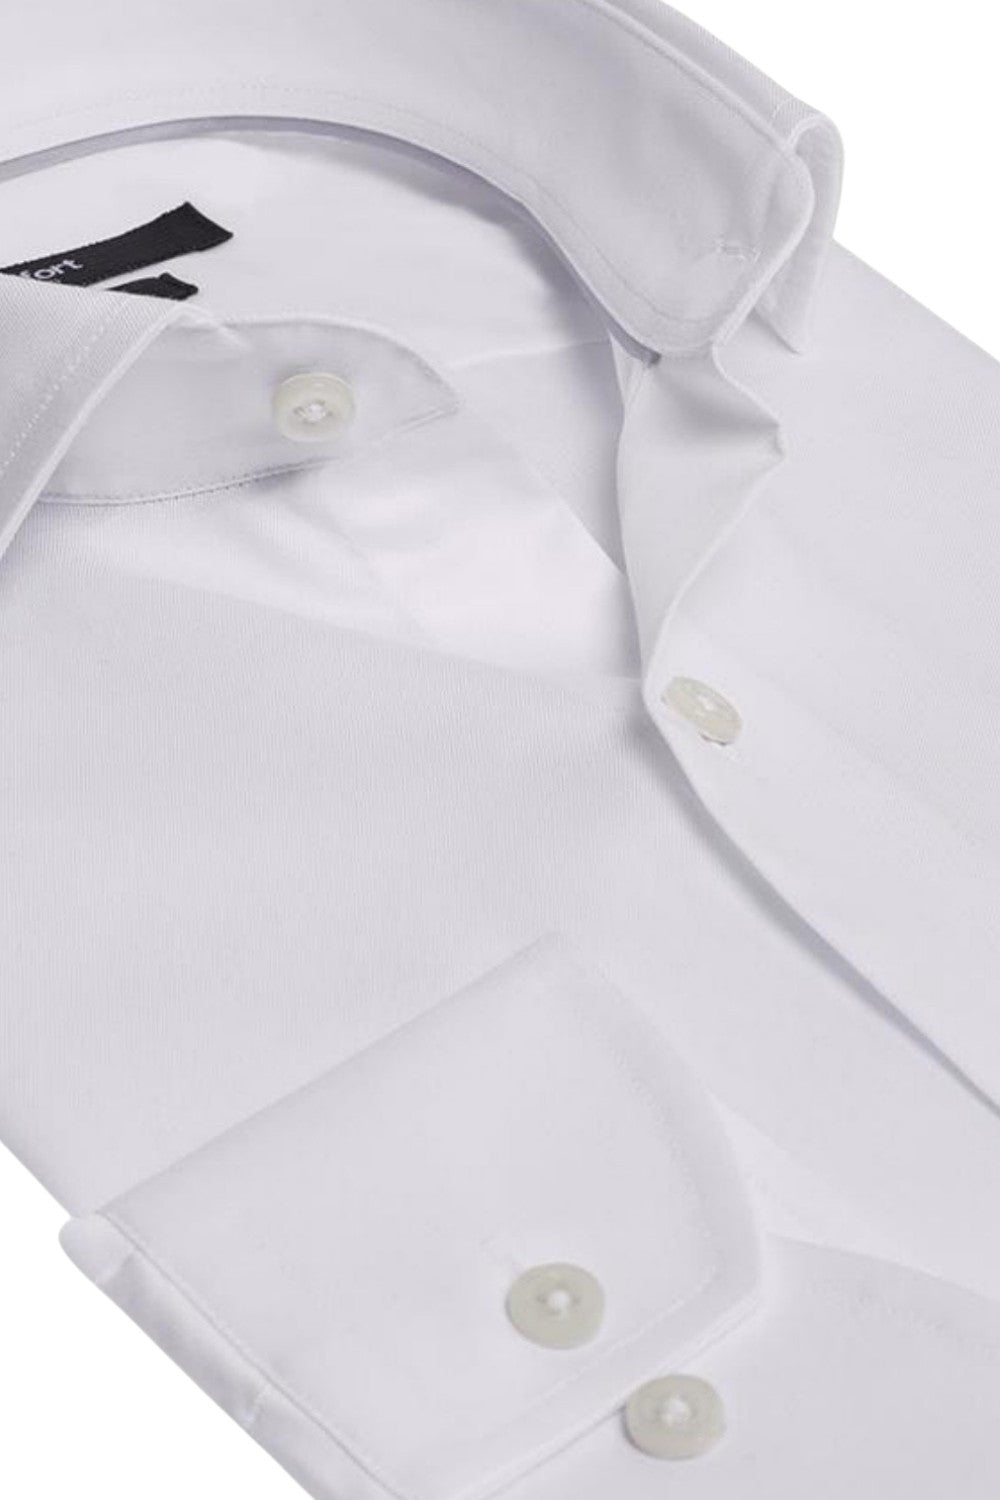 THE ANDERSON SHIRT (WHITE)